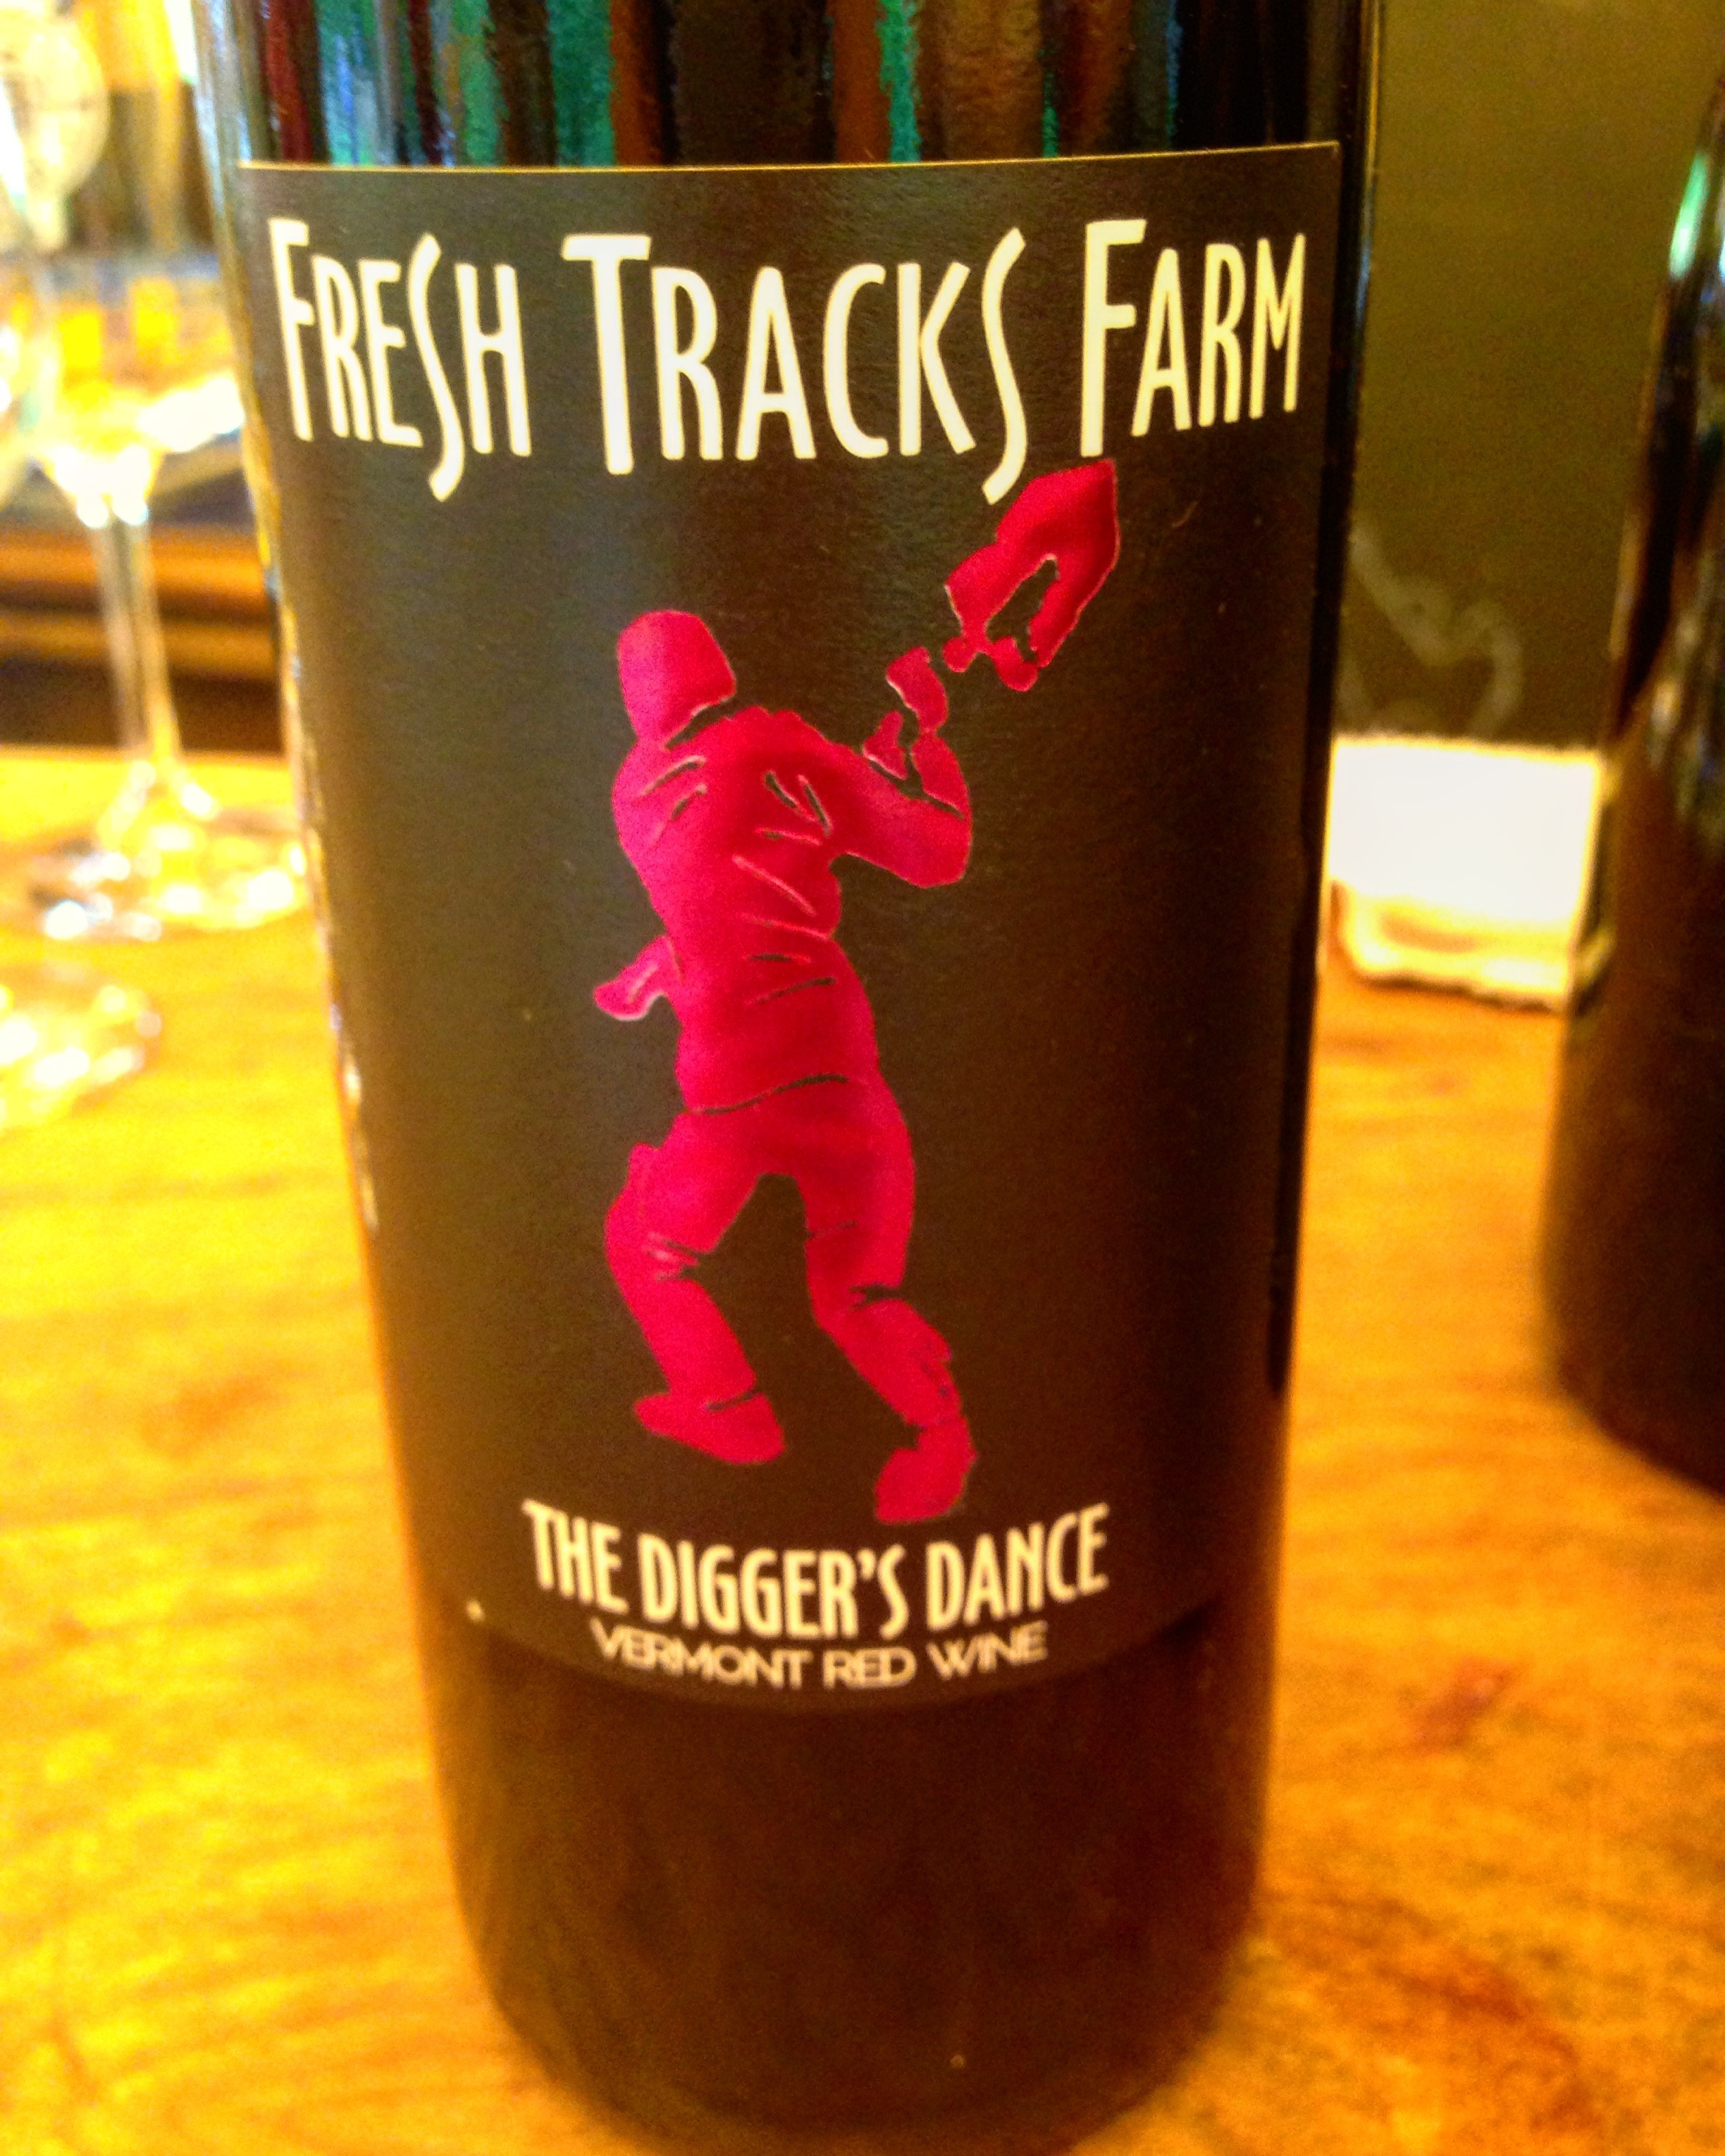 Diggers Dance red wine